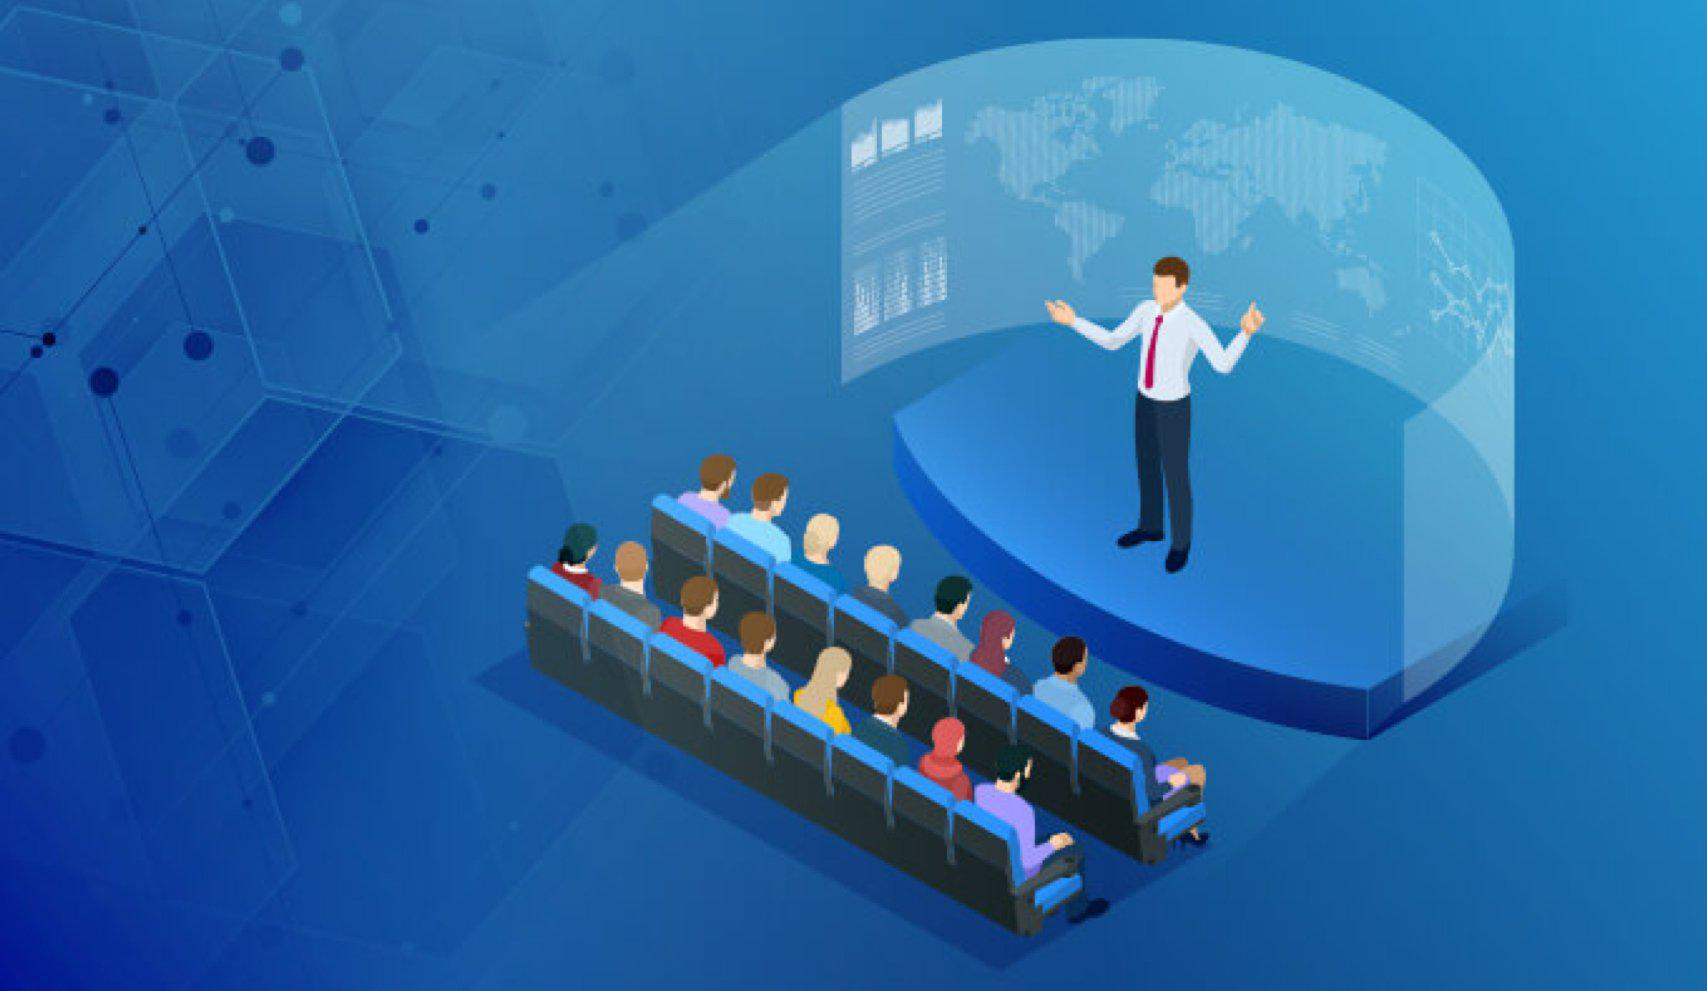 Step by step guide for hosting a virtual conference successfully